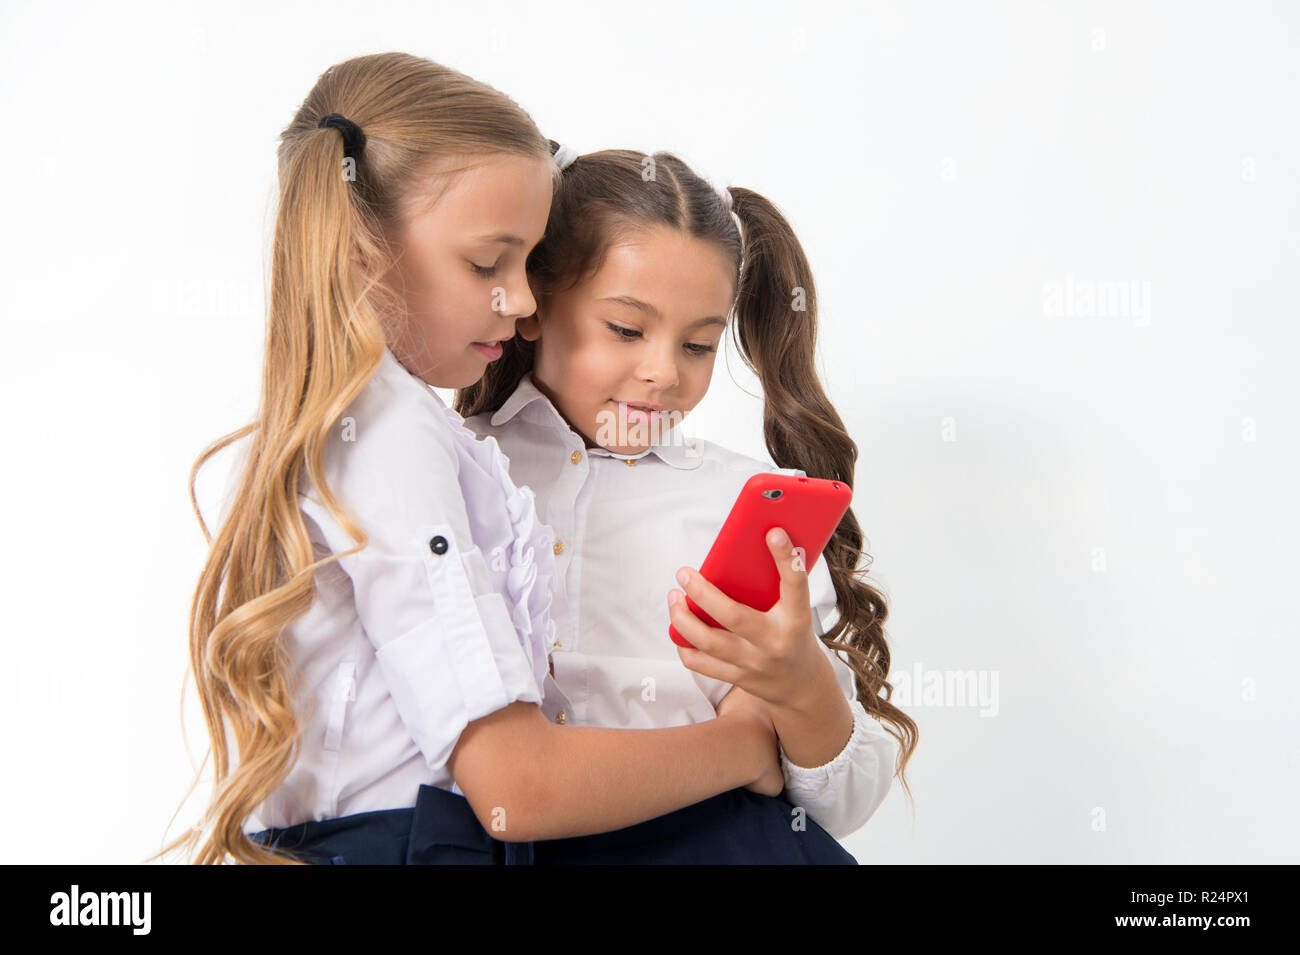 Educational application. Online entertainment concept. Schoolgirls cute pupils use smartphone check social networks. Send message friend. Online communication messaging. Surfing interesting web site. - Stock Image